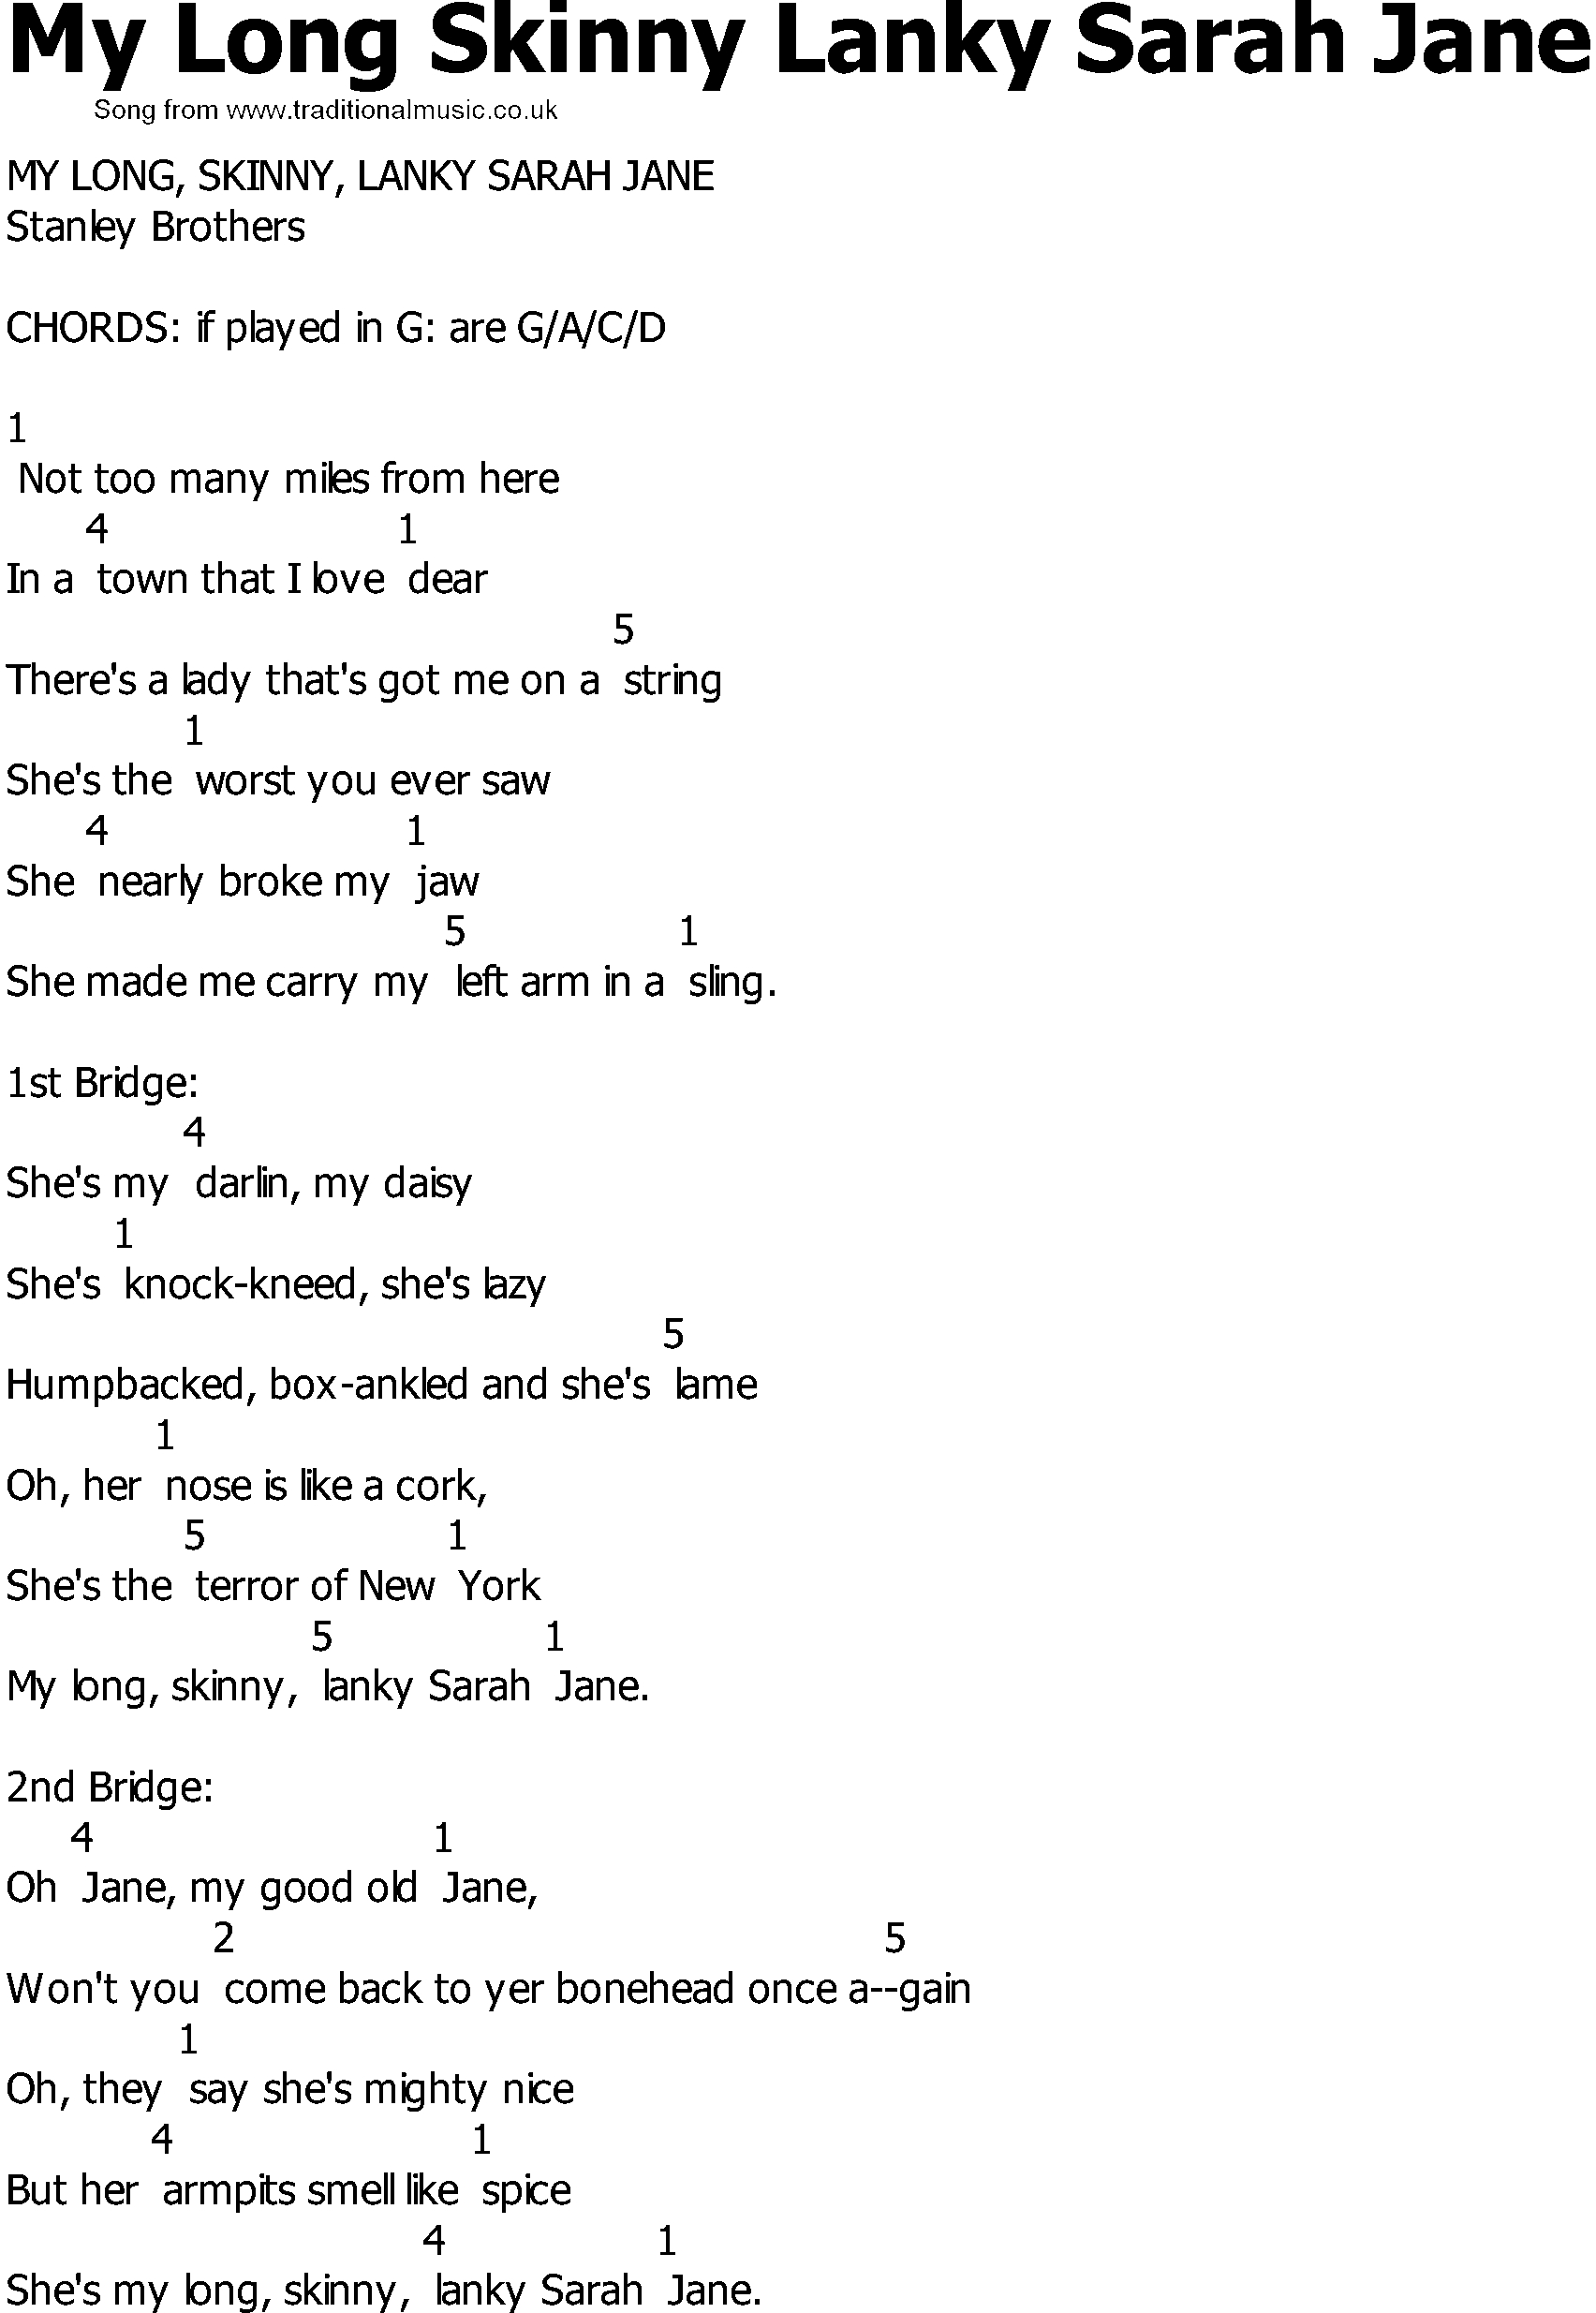 Skinny Love Chords Old Country Song Lyrics With Chords My Long Skinny Lanky Sarah Jane